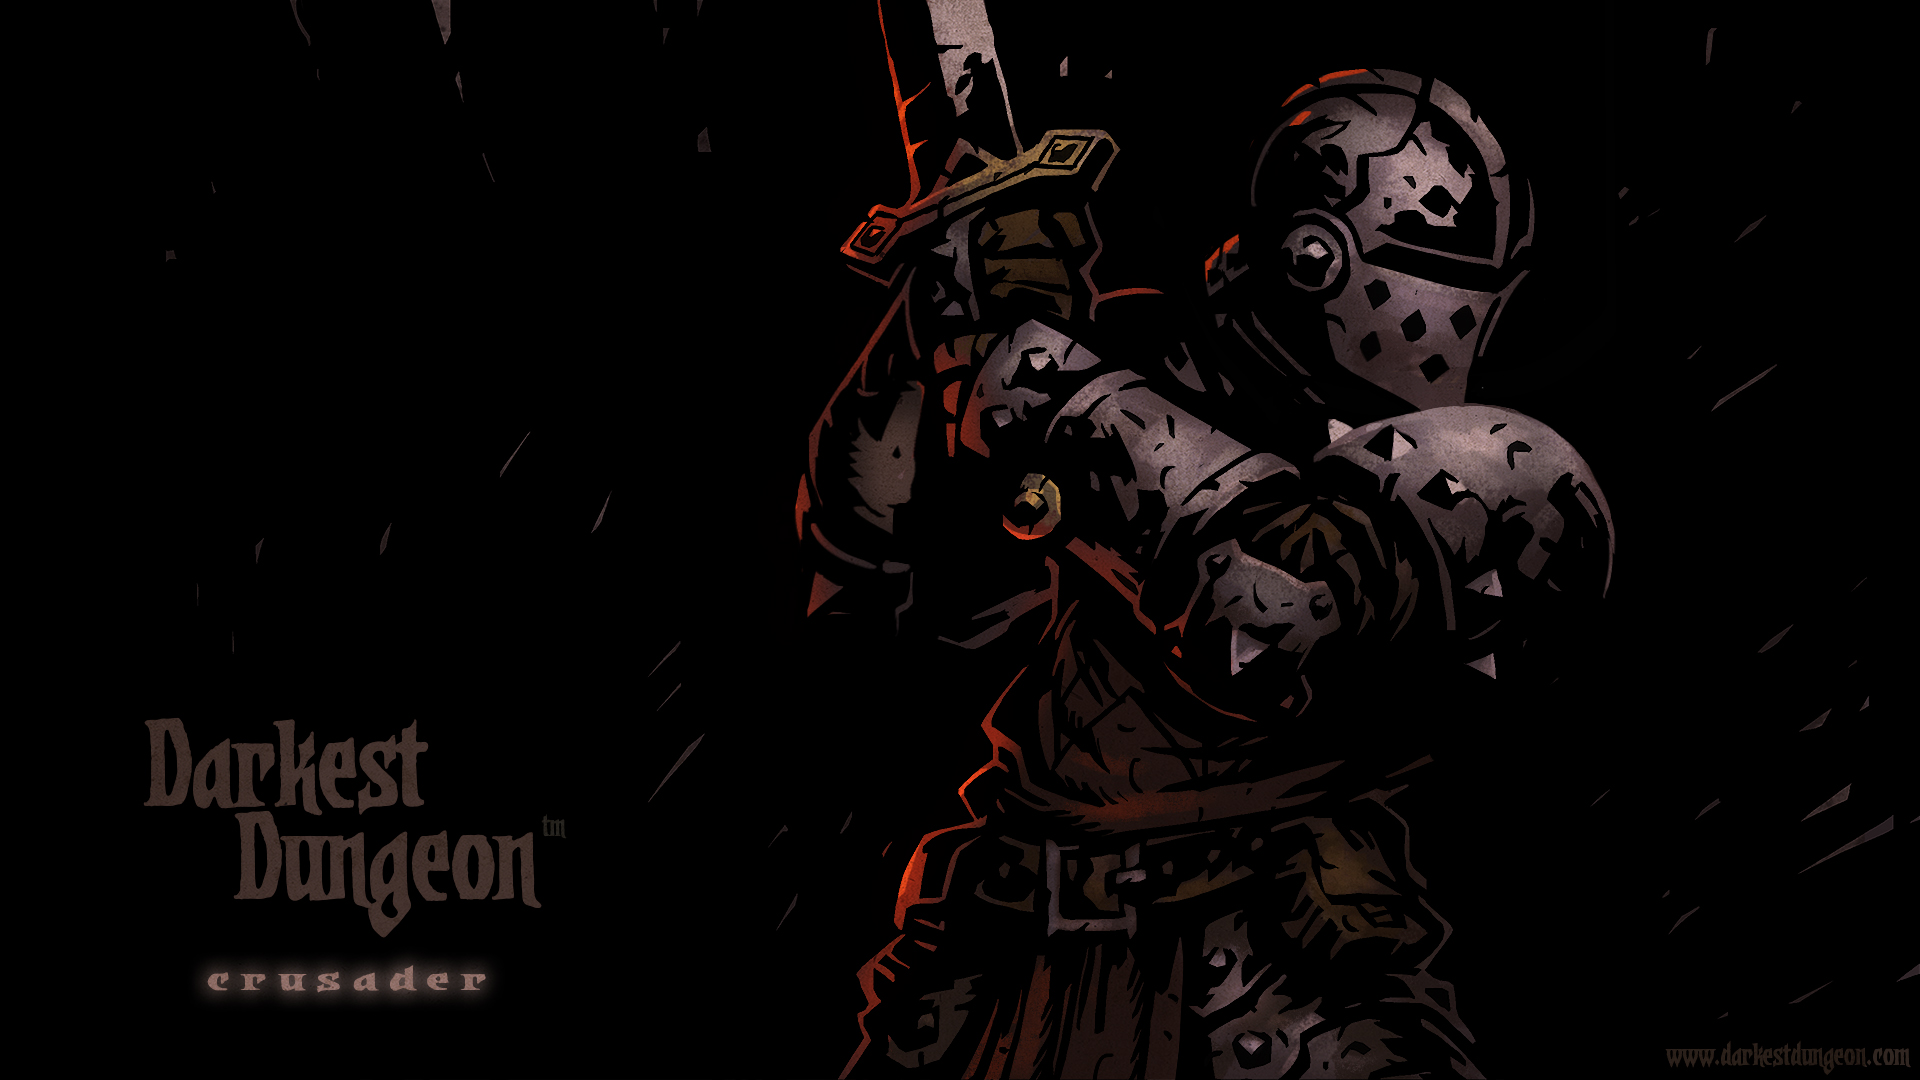 The Crusader character wallpaper.